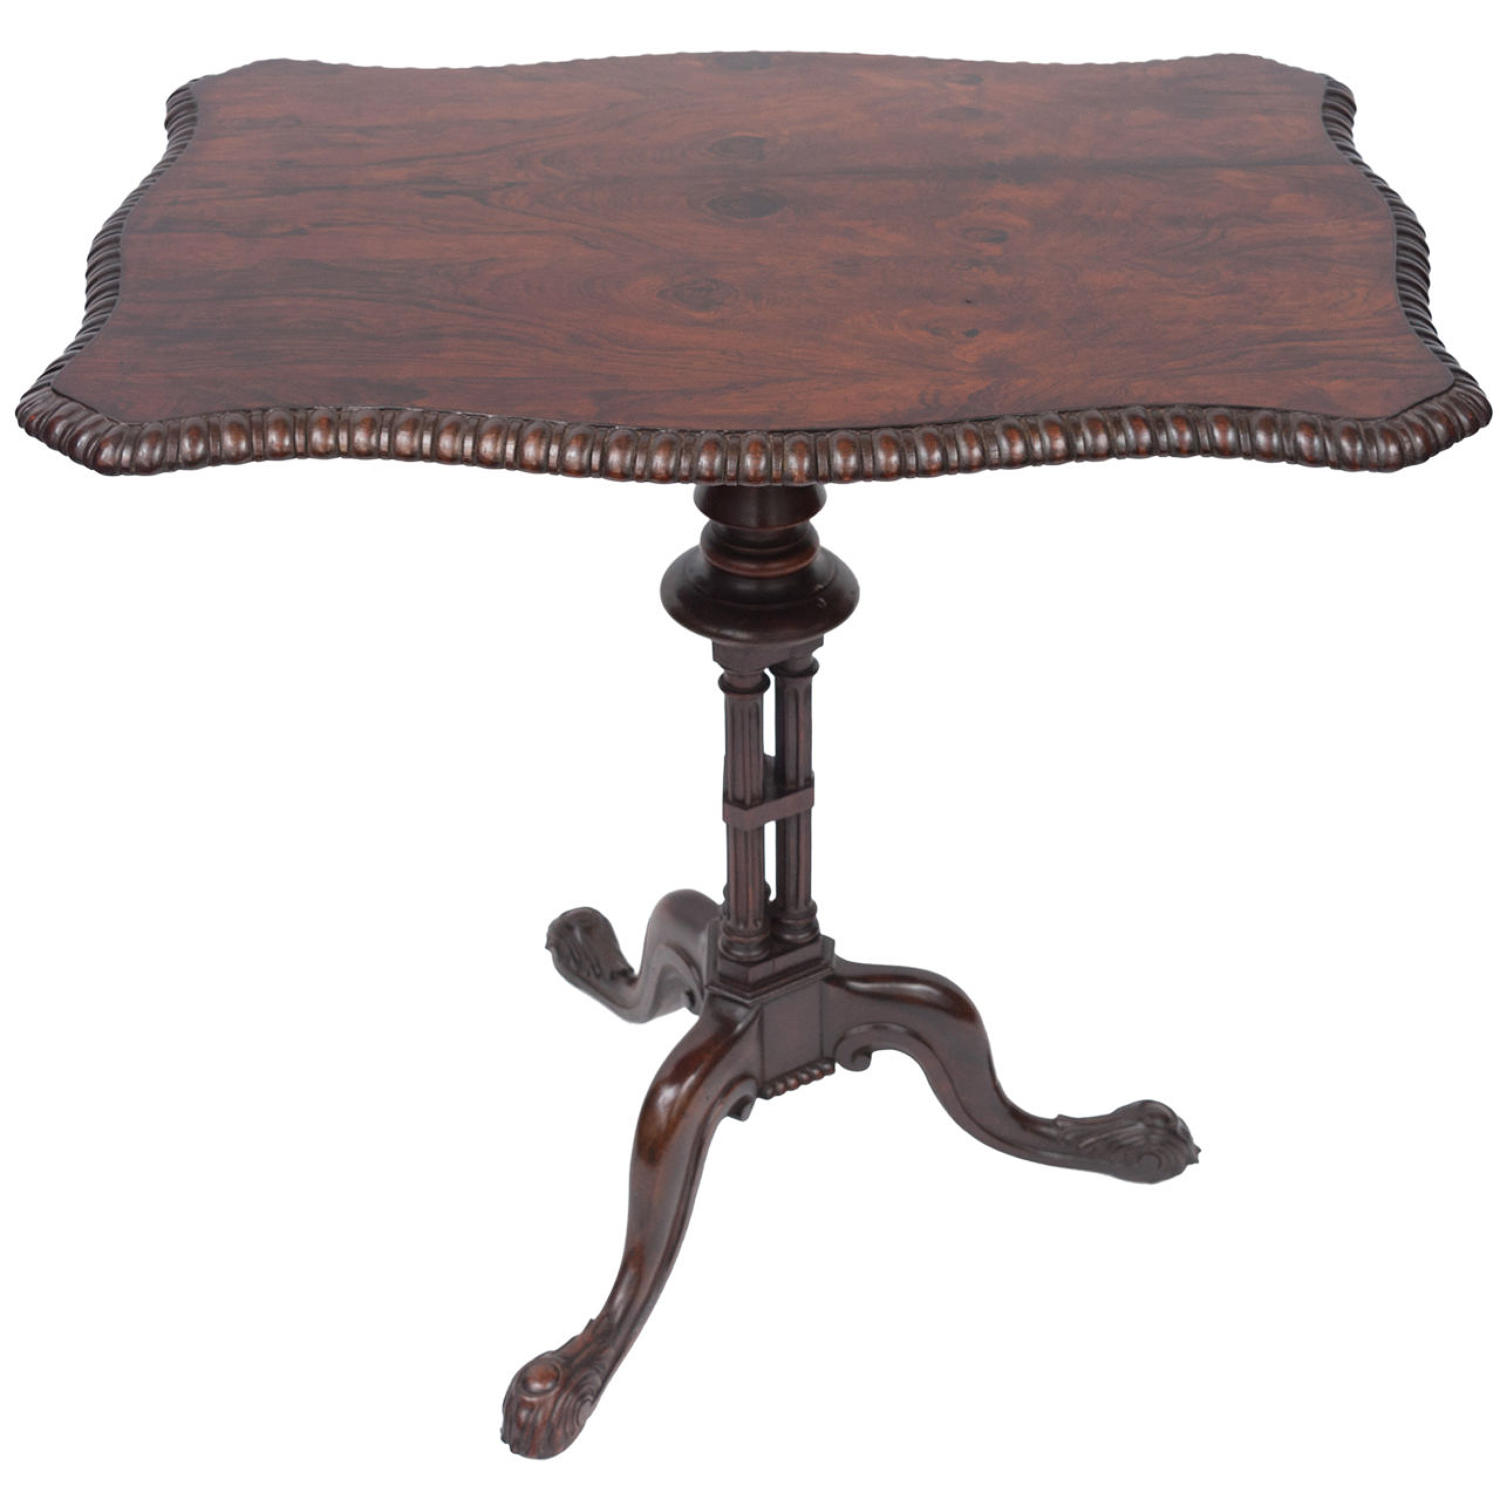 Regency rosewood Gillows rectangular tripod table